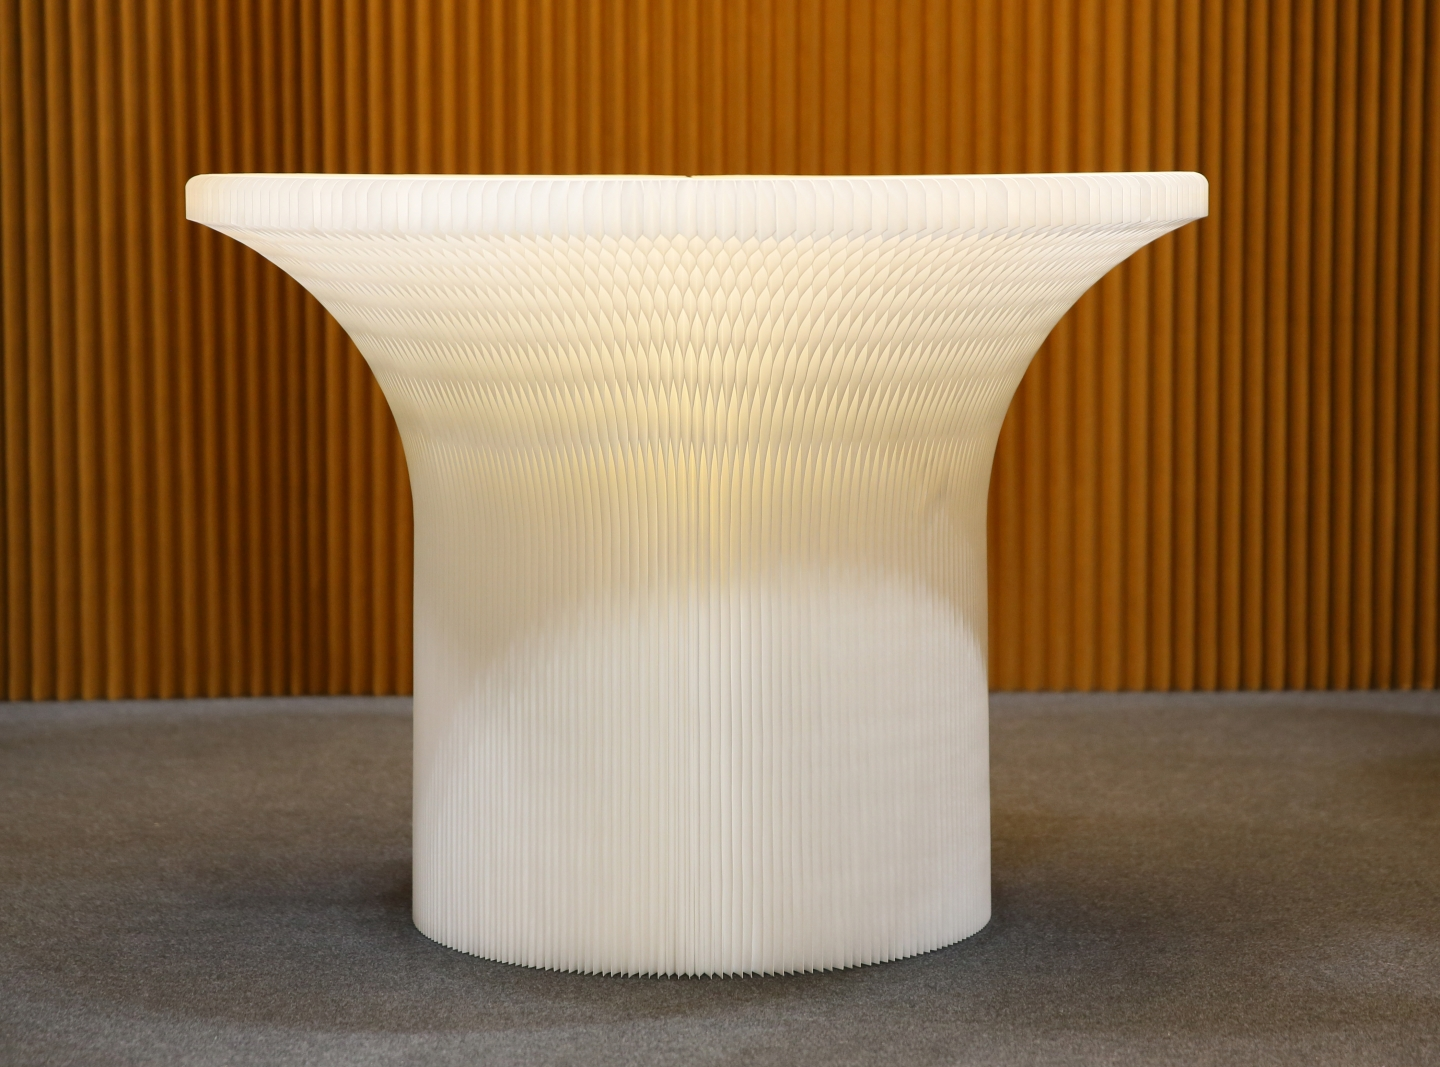 flexible paper accordion furniture by molo - the honeycomb base of a textile cantilever table